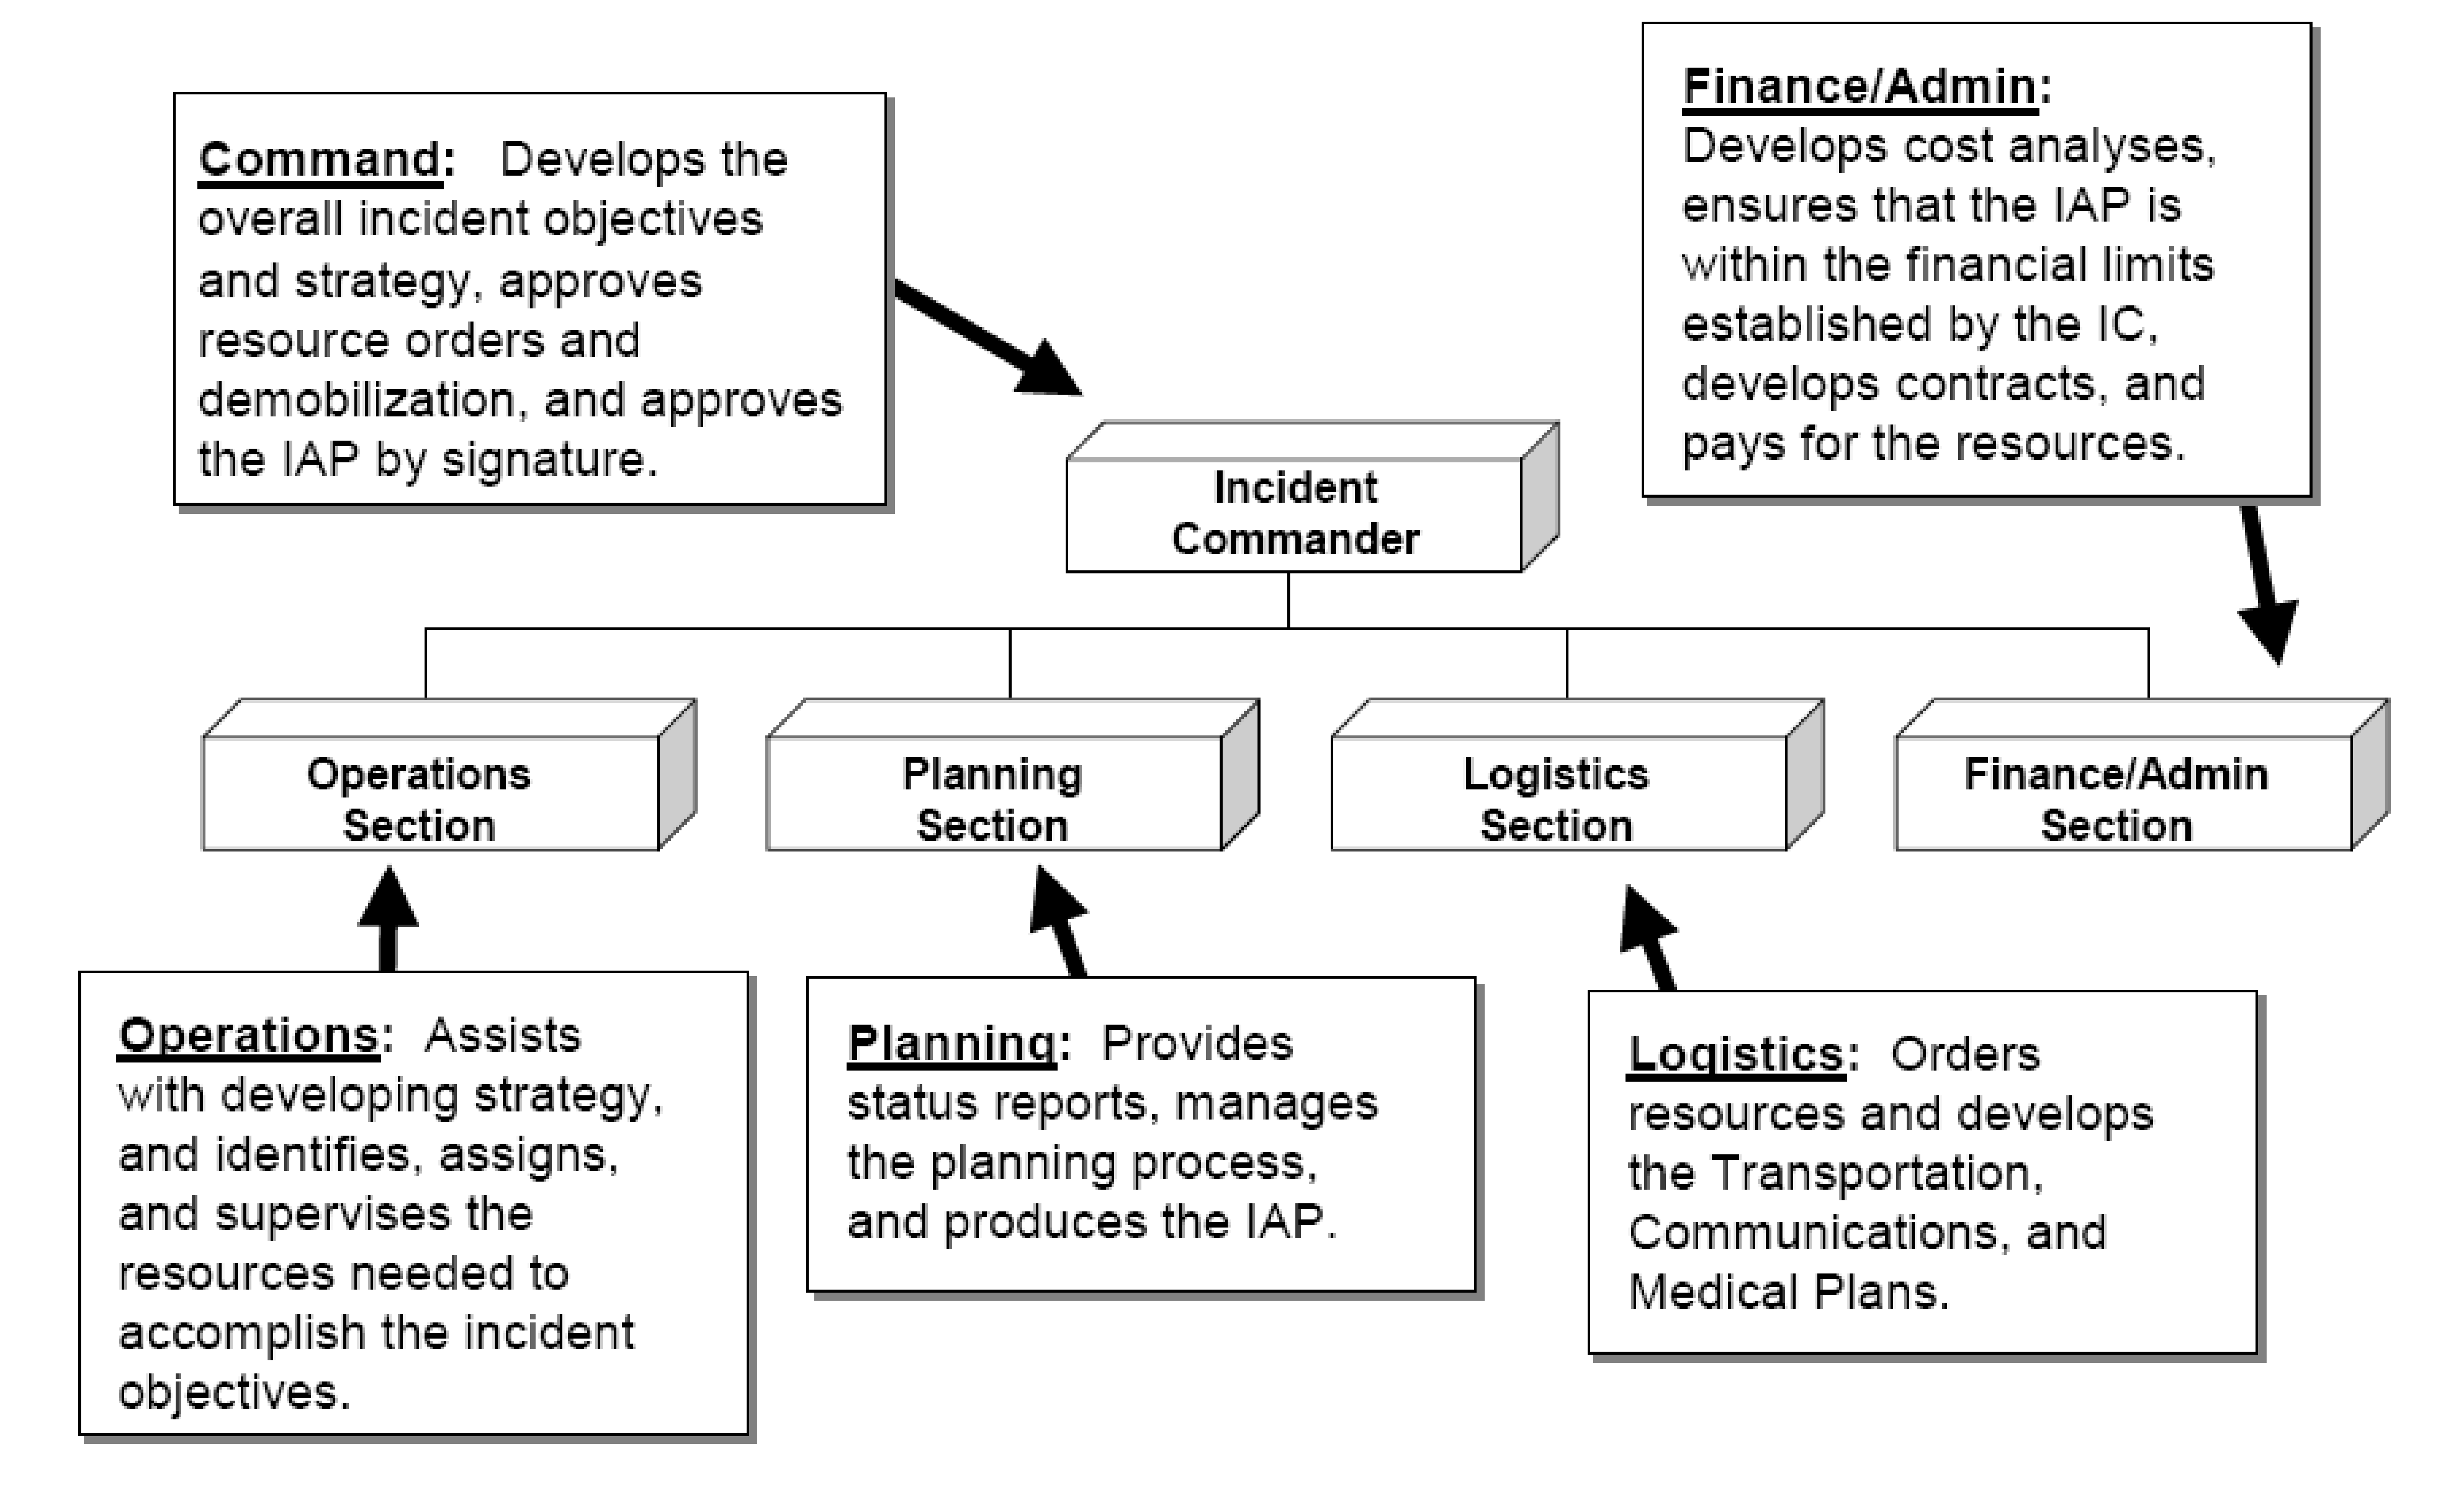 flowchart showing relationship between incident commander, operations section, planning section, logistics section and finance